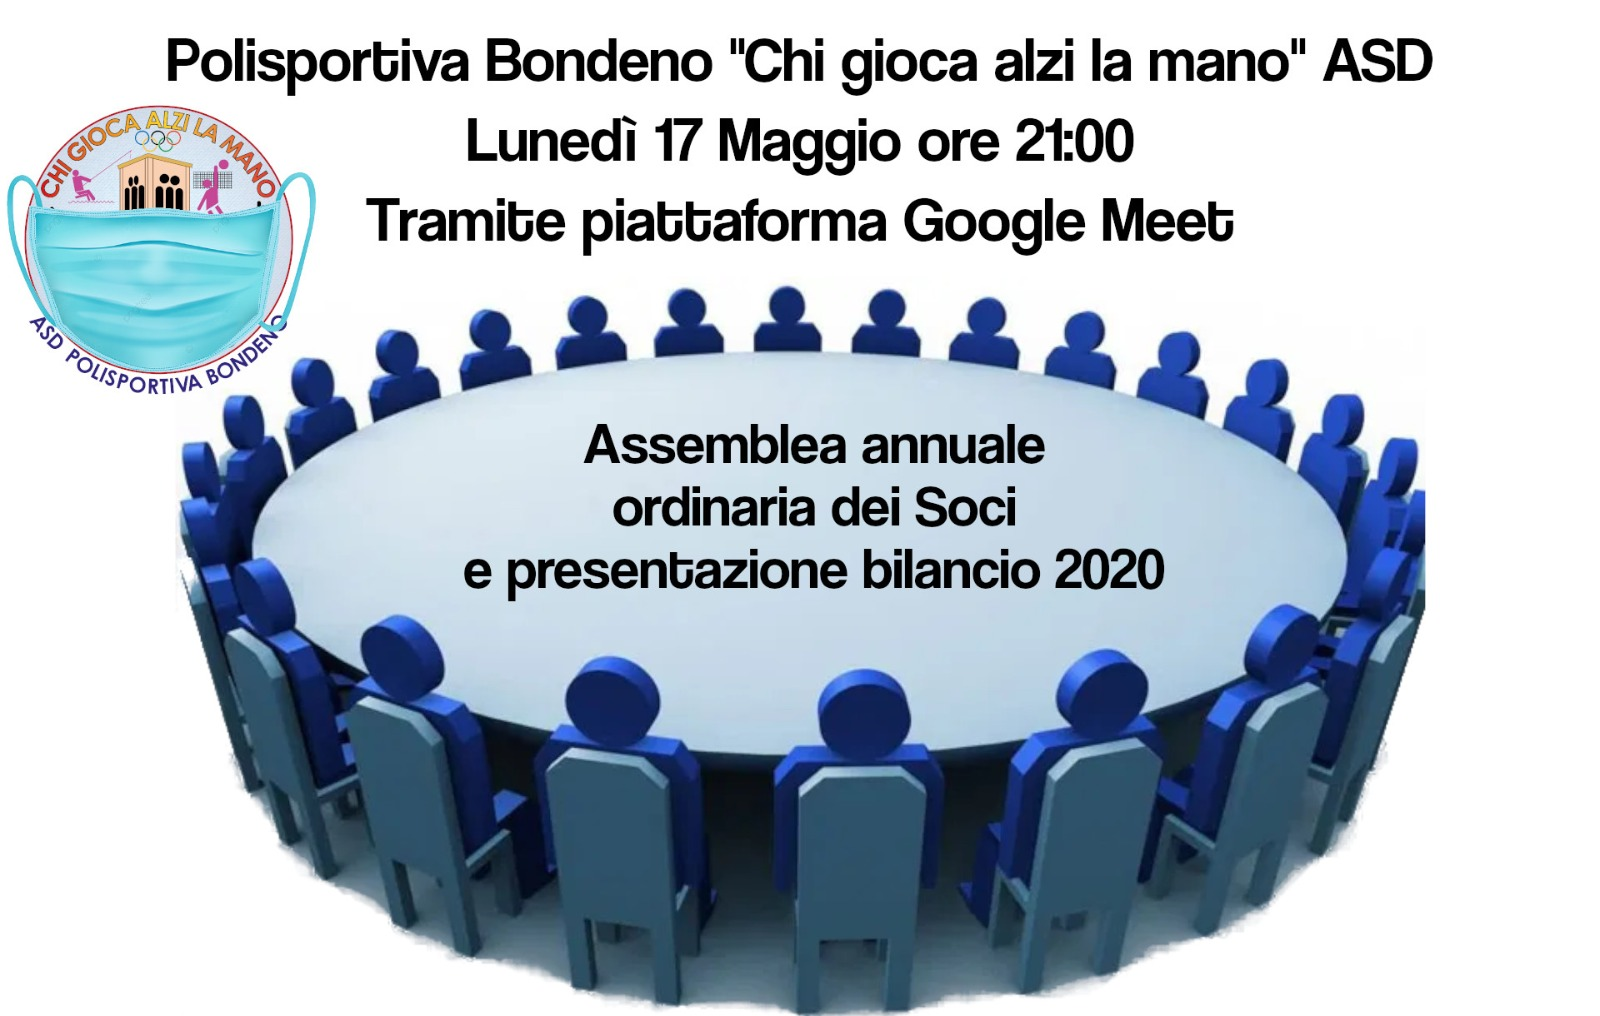 WhatsApp Image 2021 04 30 at 20.57.38